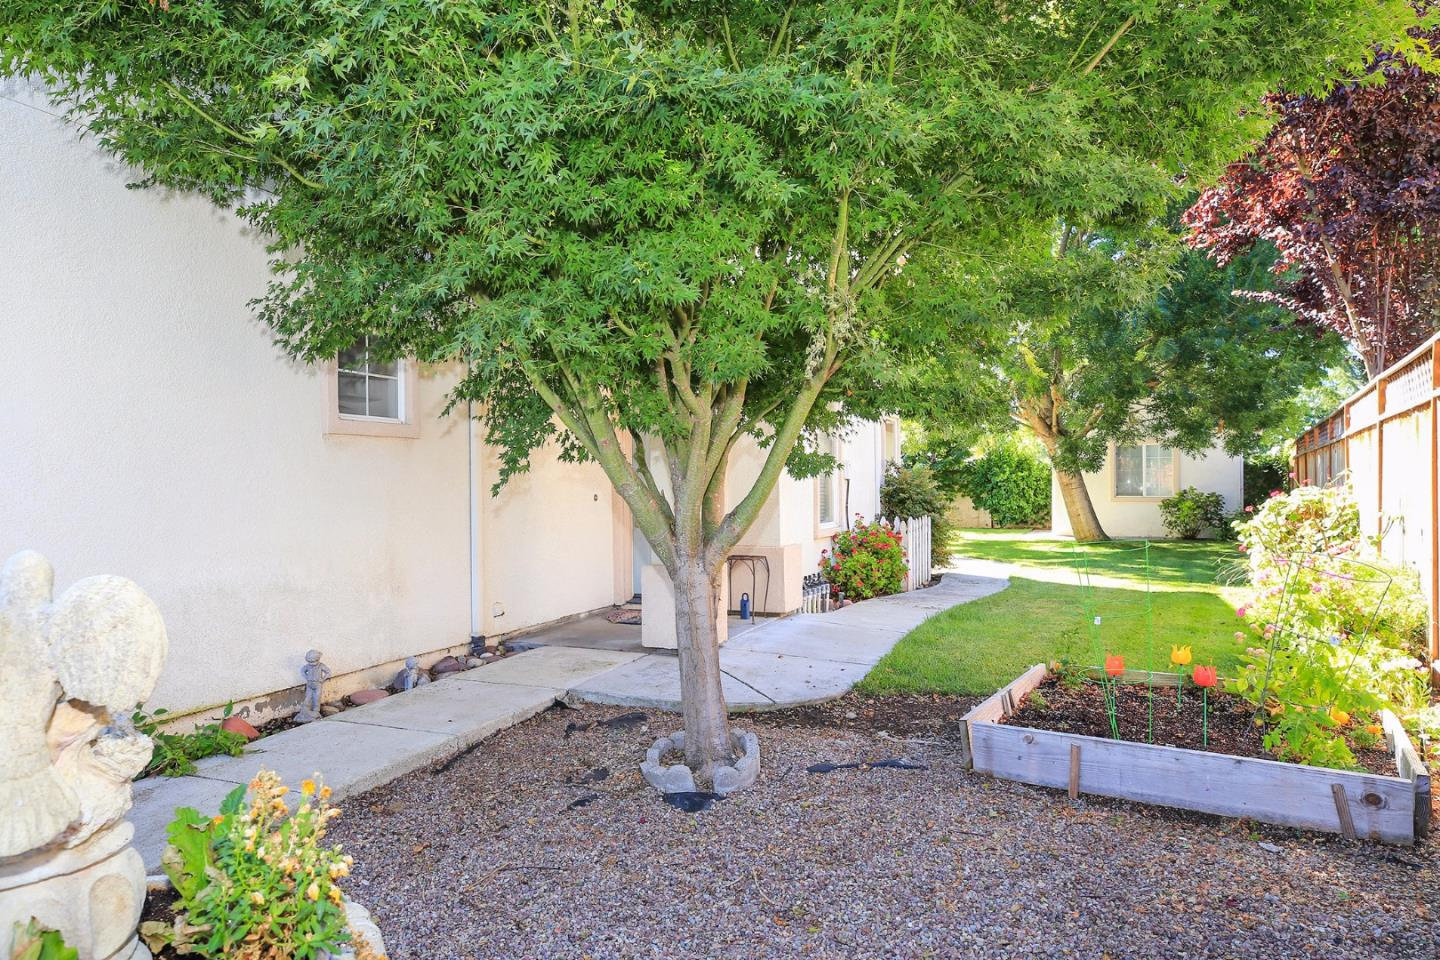 Additional photo for property listing at 1110 Sage Hill Drive  Gilroy, California 95020 Estados Unidos